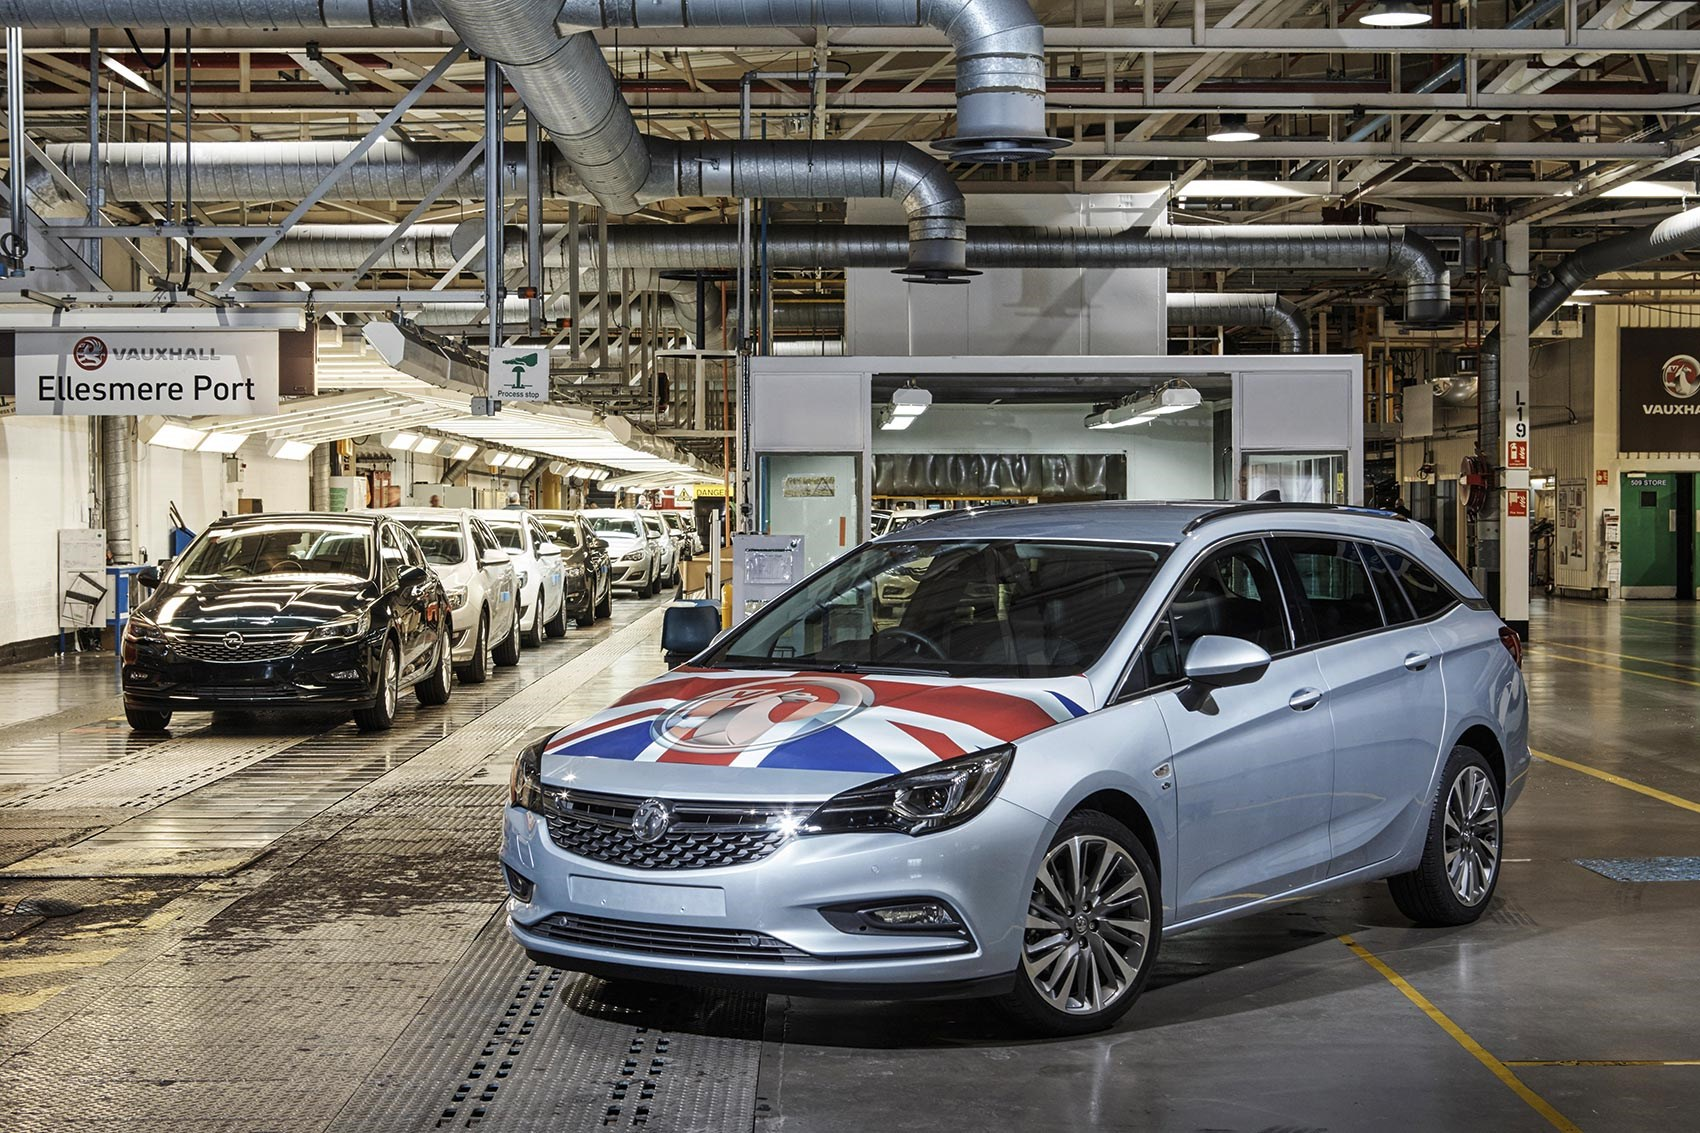 Vauxhall warns of dire consequences in event of no-deal Brexit